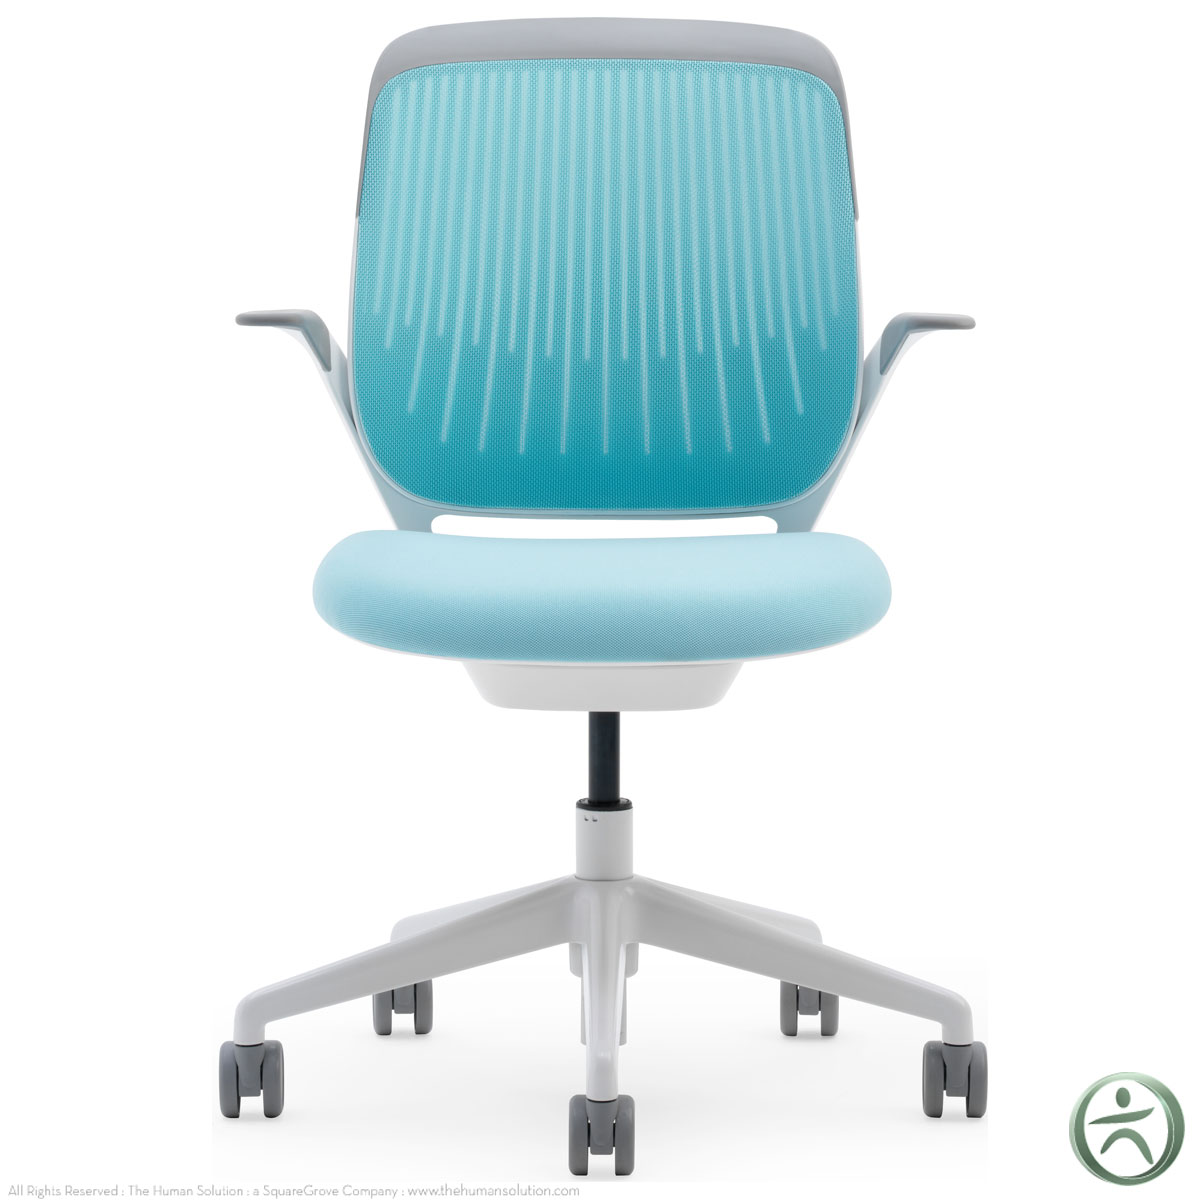 aqua desk chair phil and ted high review steelcase cobi